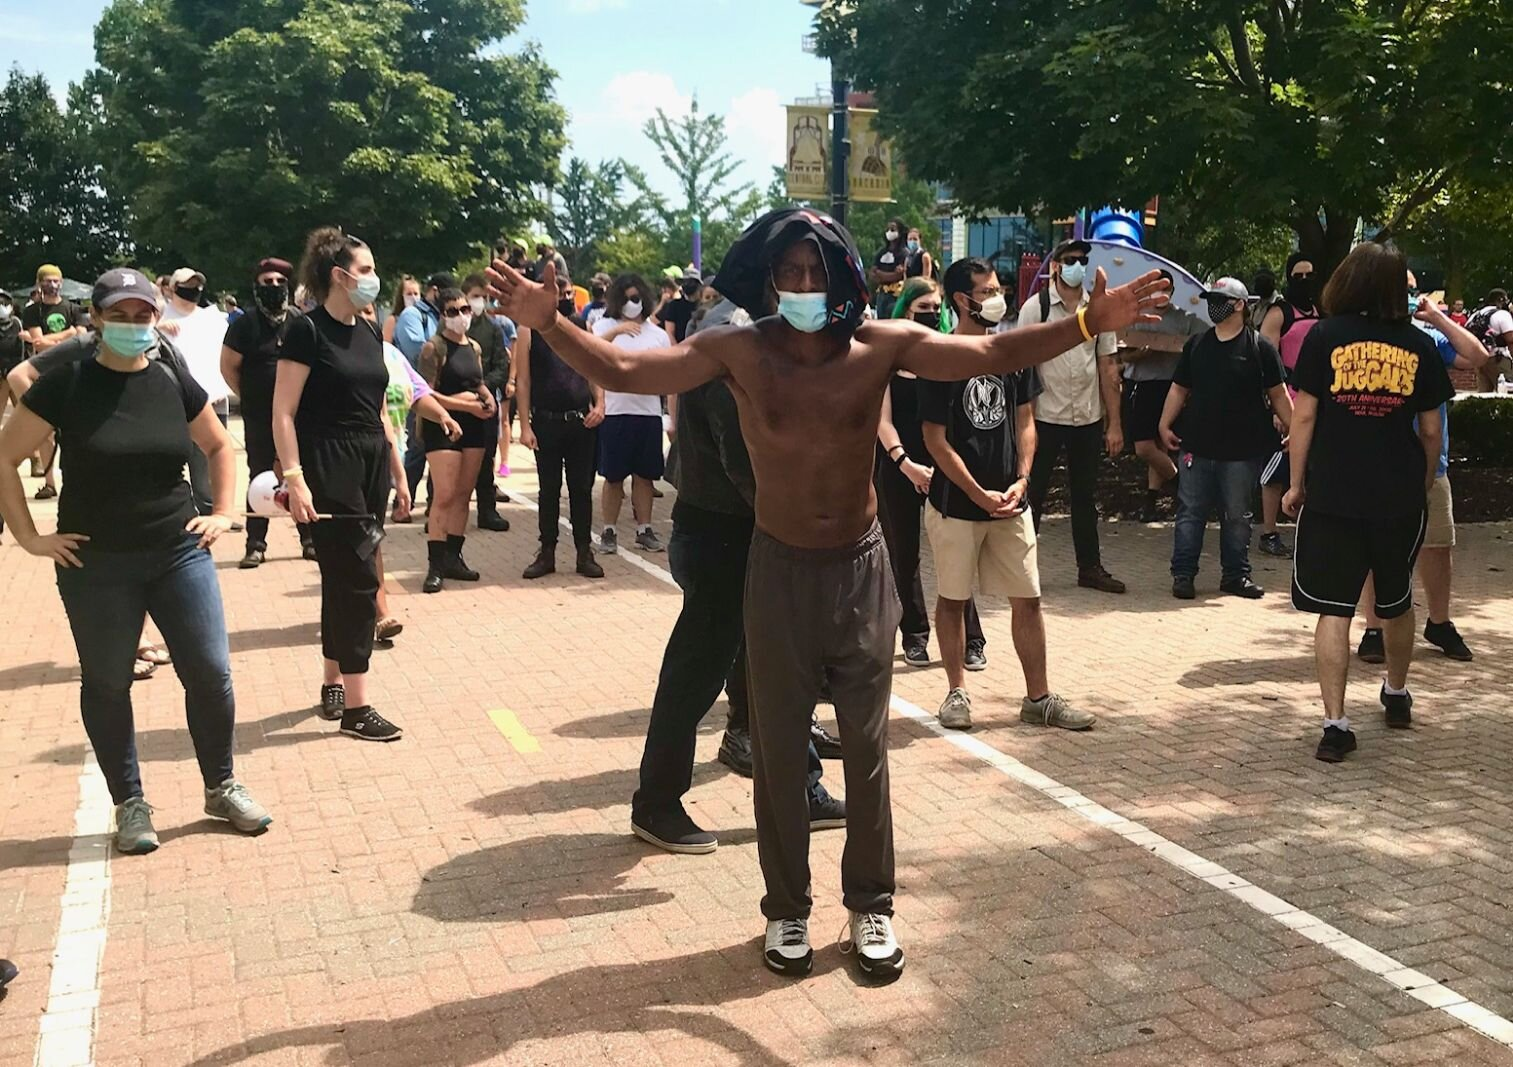 Counter-protesters wait at the eastern entrance of Arcadia Creek Festival Place in downtown Kalamazoo for the arrival of alt-right, now-fascist group the Proud Boys.